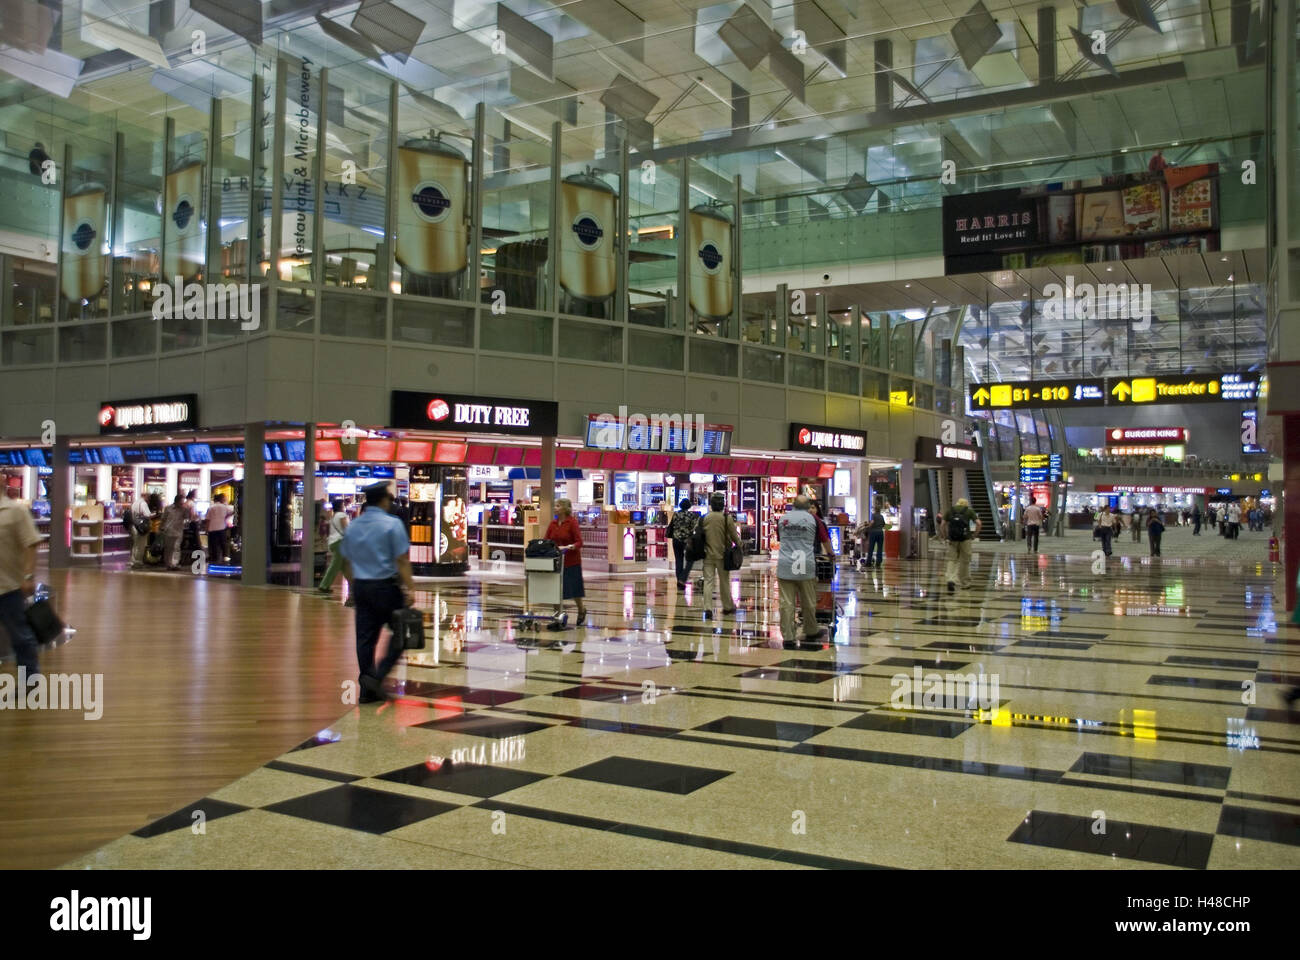 changi airport terminal 3 stock photos changi airport terminal 3 singapore airport changi airport interior shot stock image